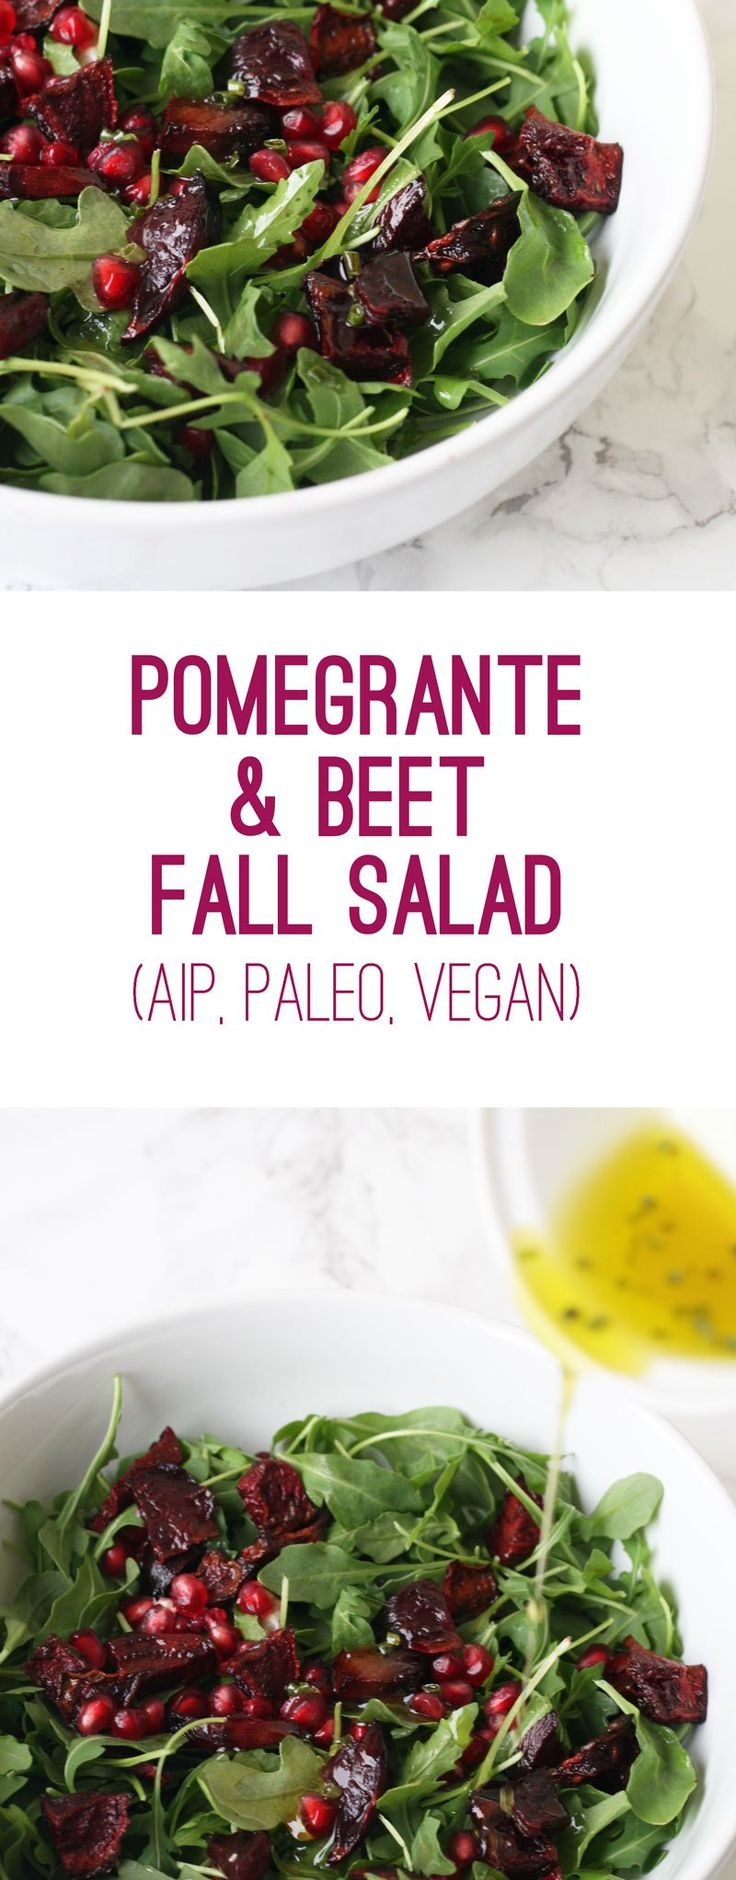 Pomegranate Beet Fall Salad (AIP, Paleo, Vegan)